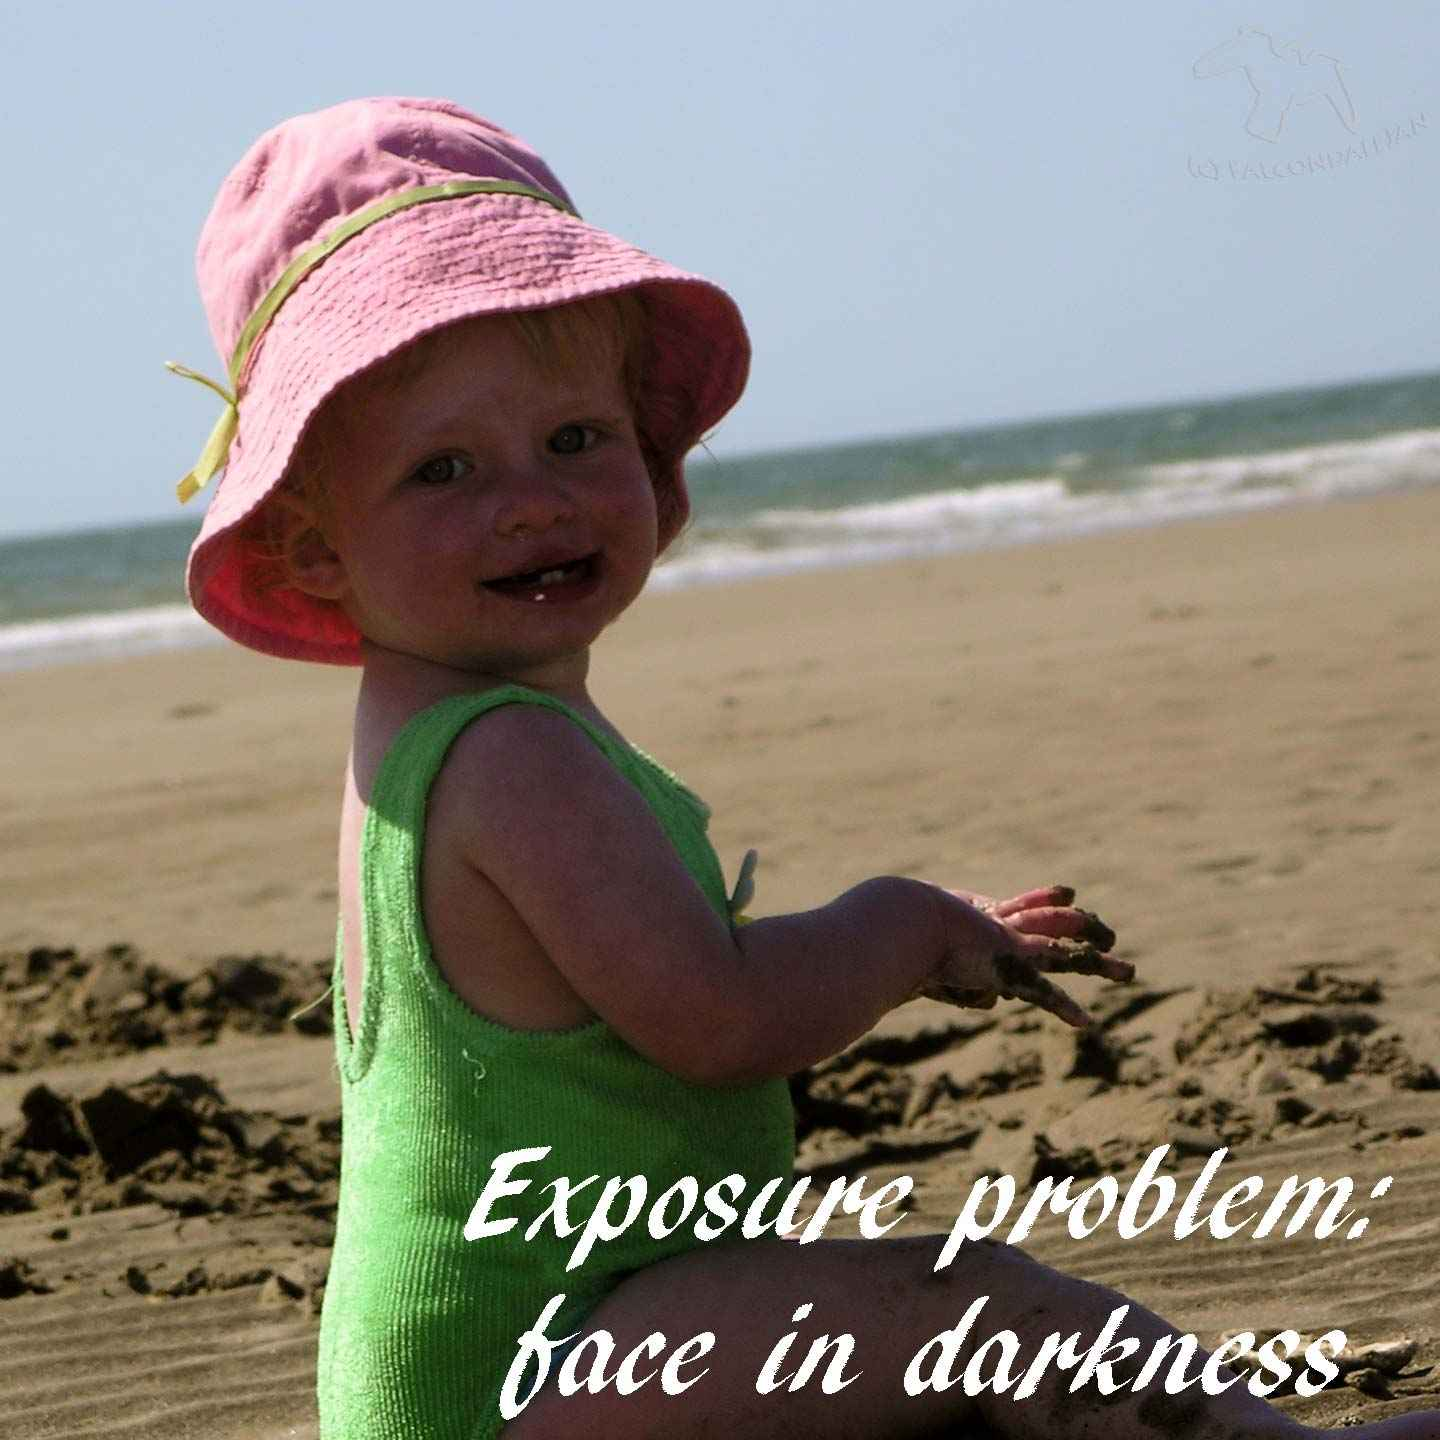 Even if you're using your camera to simply point and shoot you still need a good exposure. How do you know that you have got good exposure, and why does it matter? Tips to understand easy and difficult lighting conditions for learner photographers. Photography in Auto Mode part 5, Understanding Good Exposure on Falcondale Life blog. Image description: baby on the beach, face in shadow.